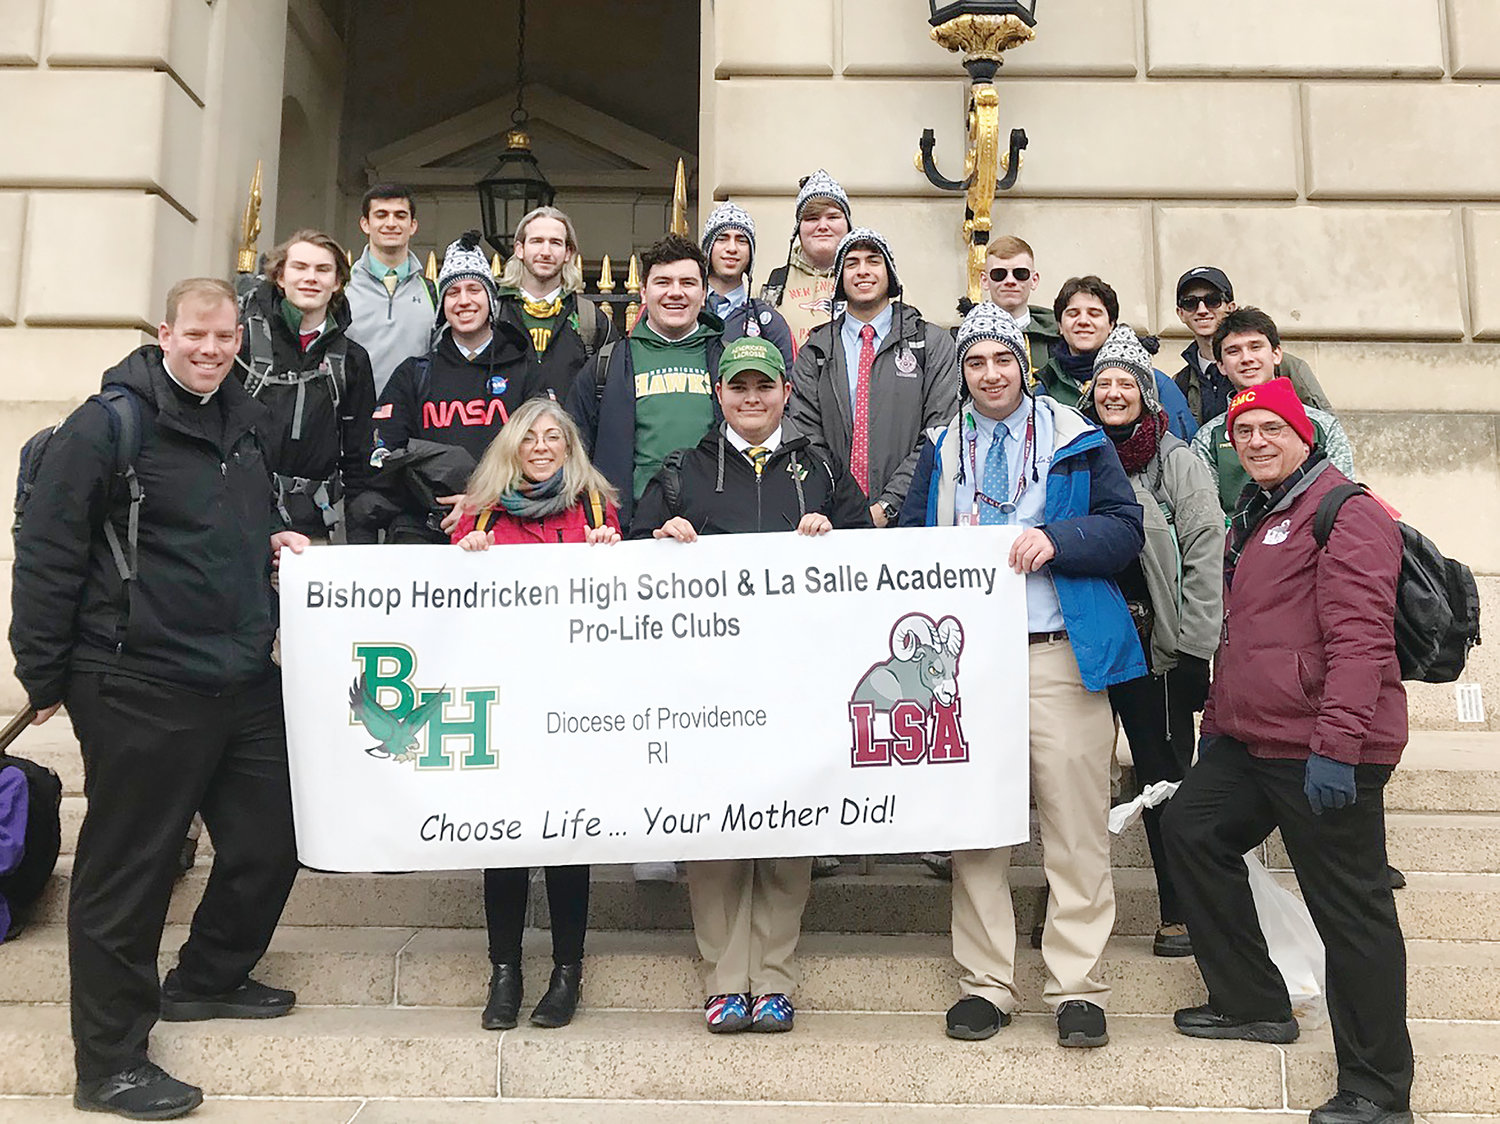 Pro-life groups from Bishop Hendricken High School and LaSalle Academy unite in Washington, D.C., for the March for life with their chaplains Father Brian Morris (Hendricken), left, and Father Thomas Woodhouse (LaSalle).